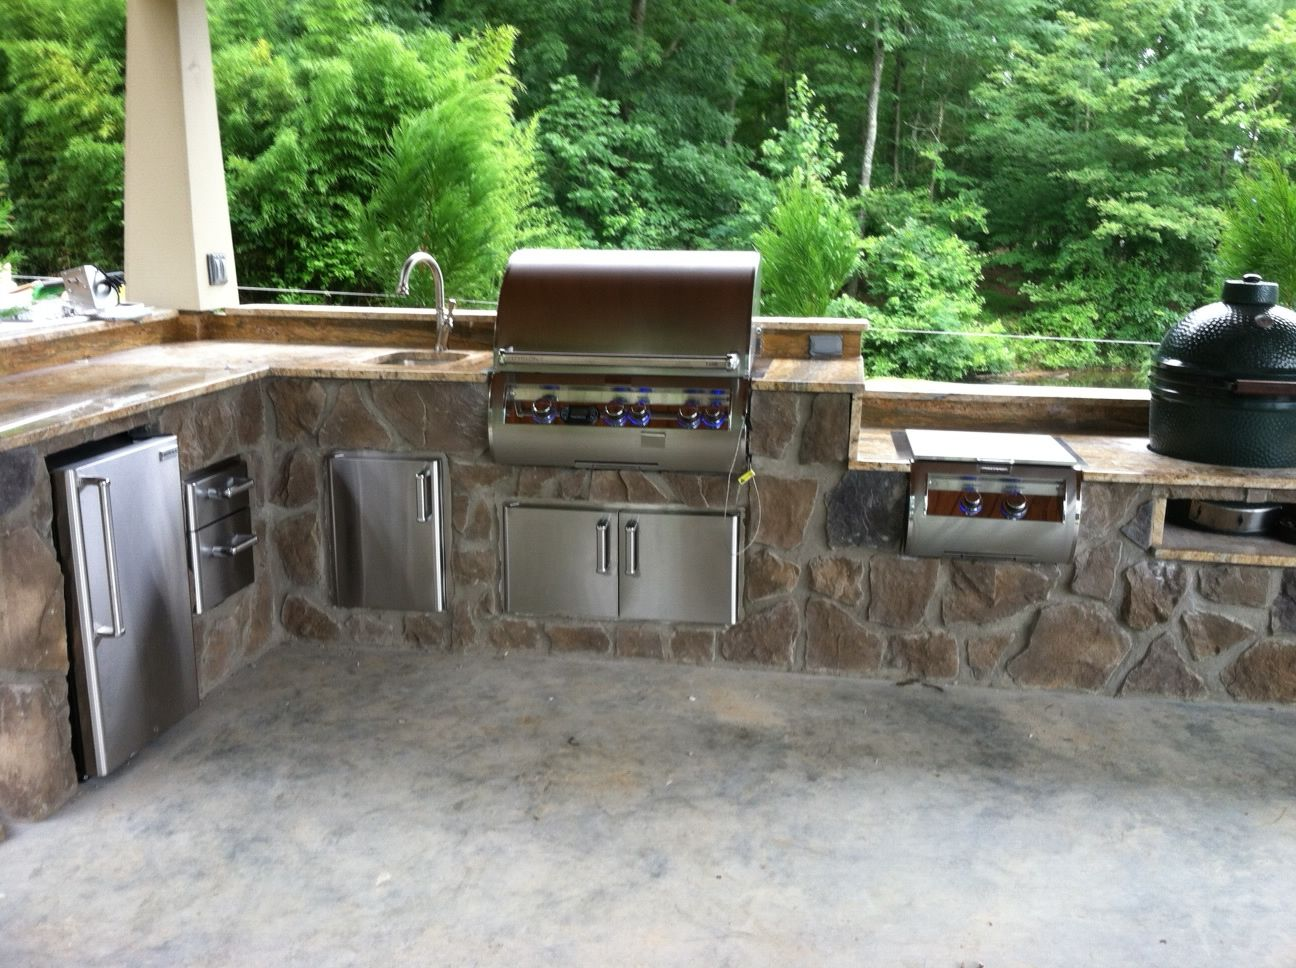 Outdoor Küche Fire Magic This Is A Custom Outdoor Kitchen With A Built In Fire Magic Grill